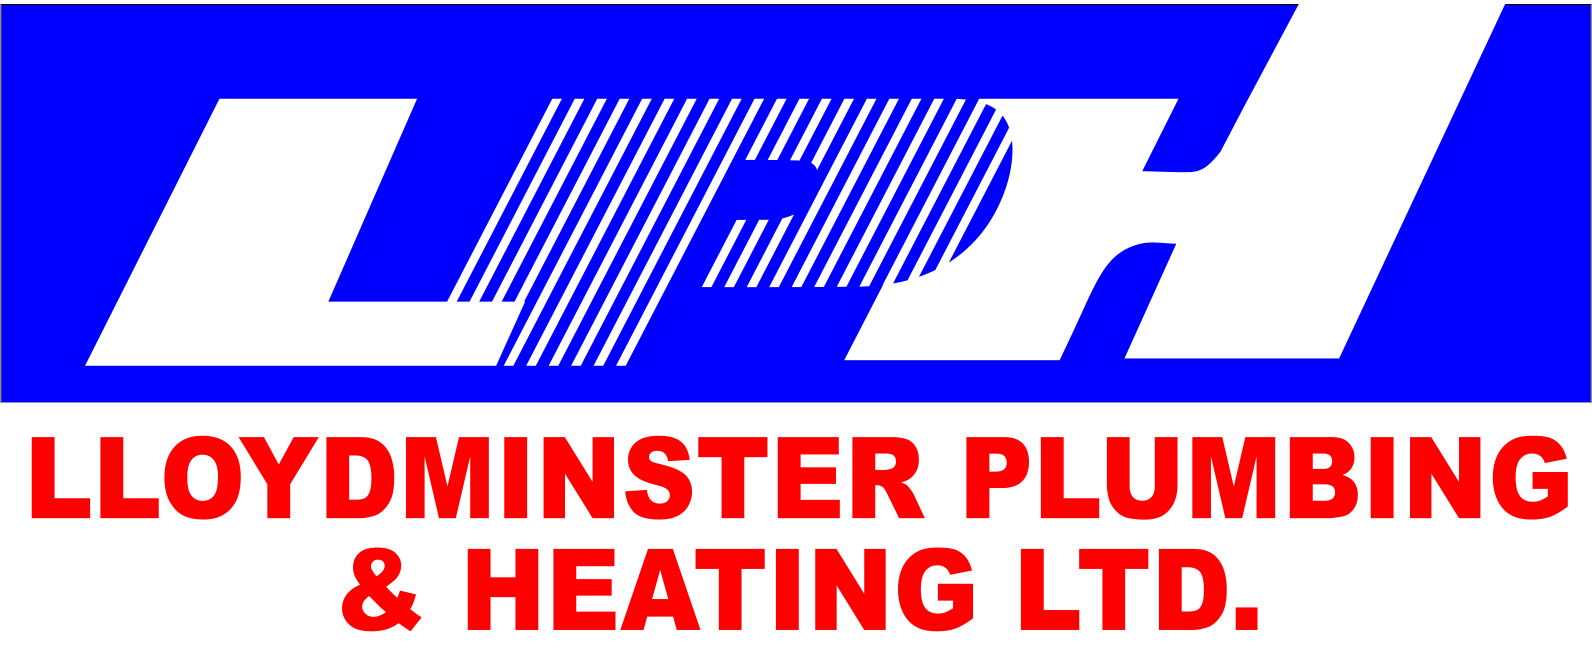 Lloydminster Plumbing & Heating Ltd.